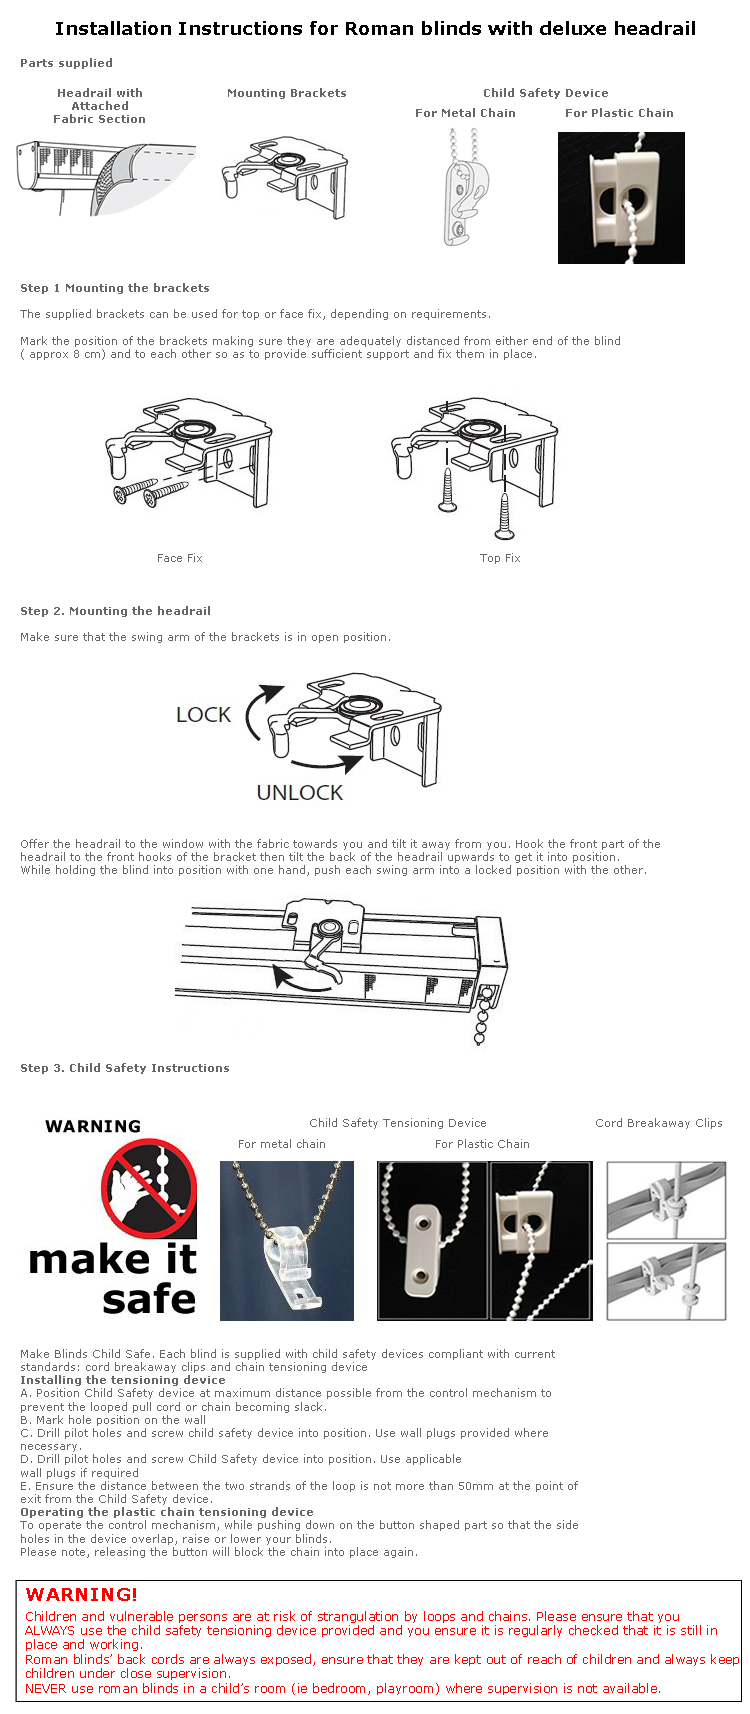 Deluxe Headrail Fitting Instructions